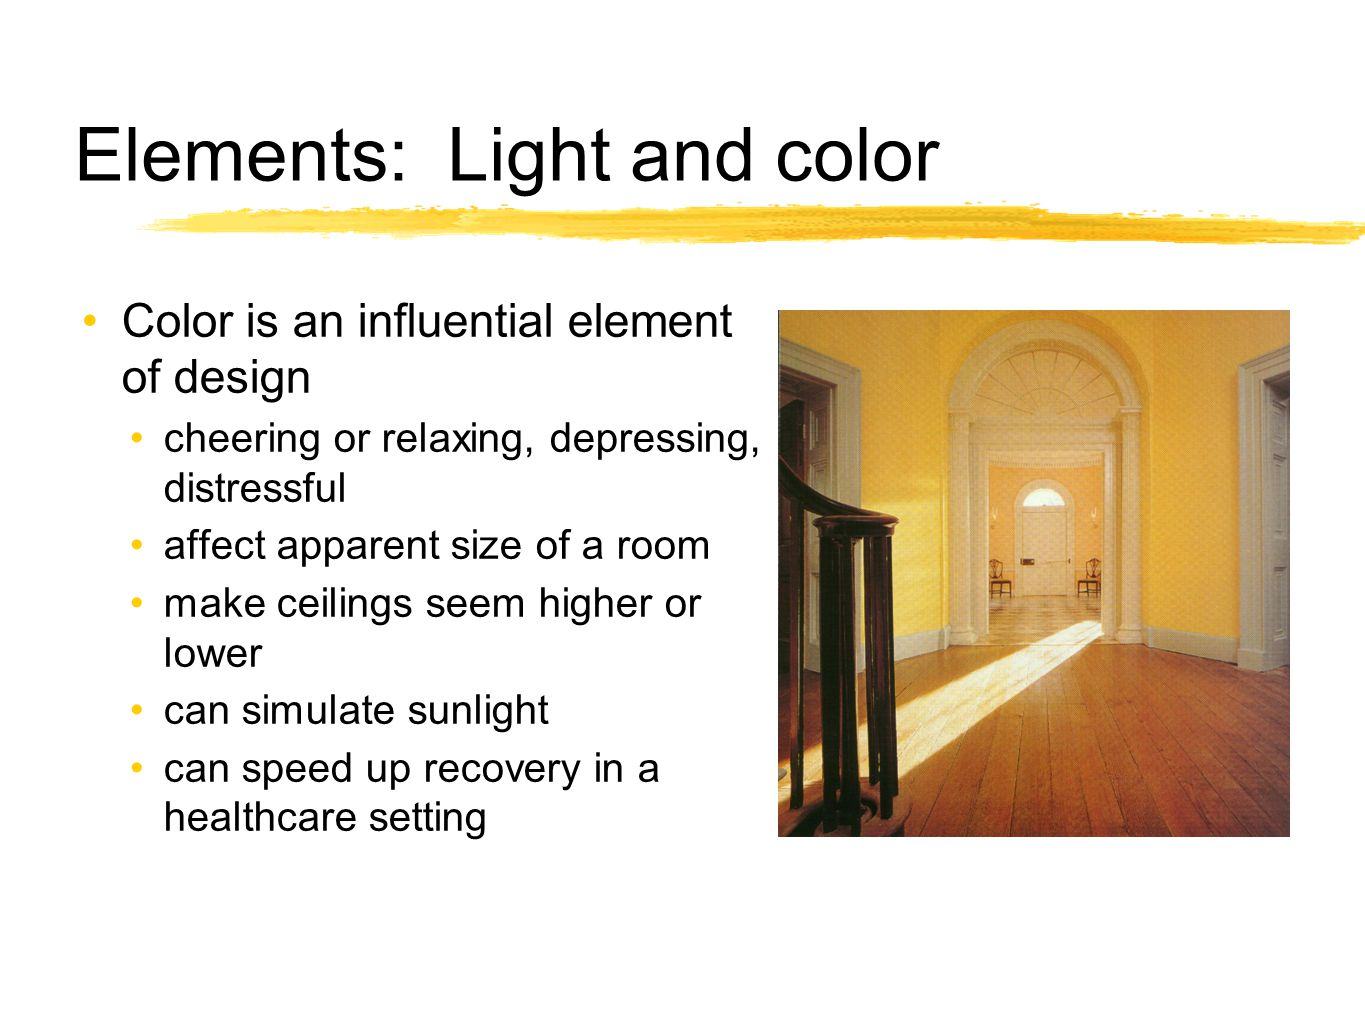 Elements: Light and color